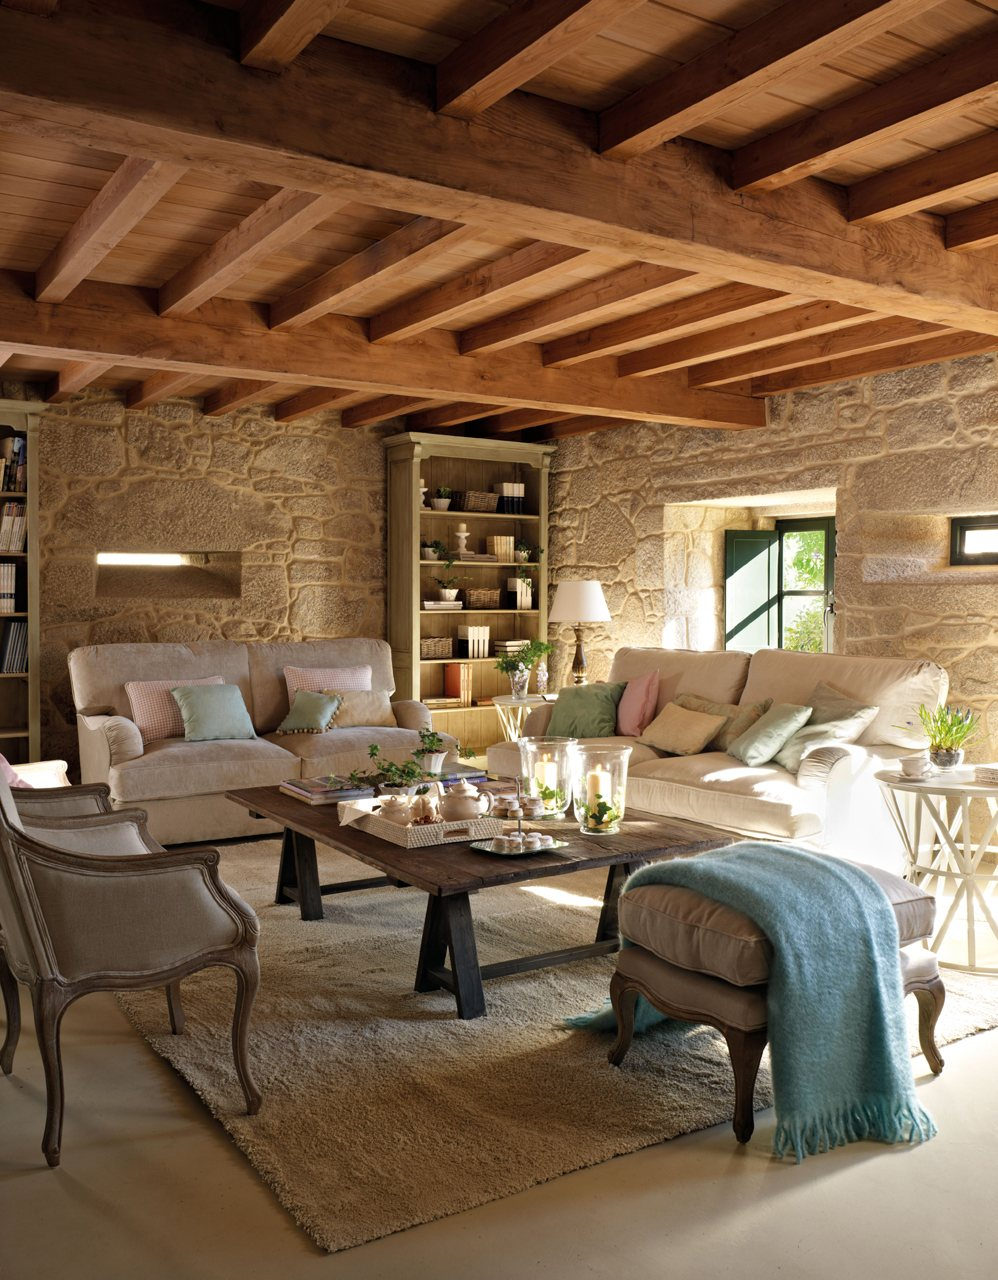 15 ideas para decorar salones r sticos - Decoracion de interiores rusticos ...